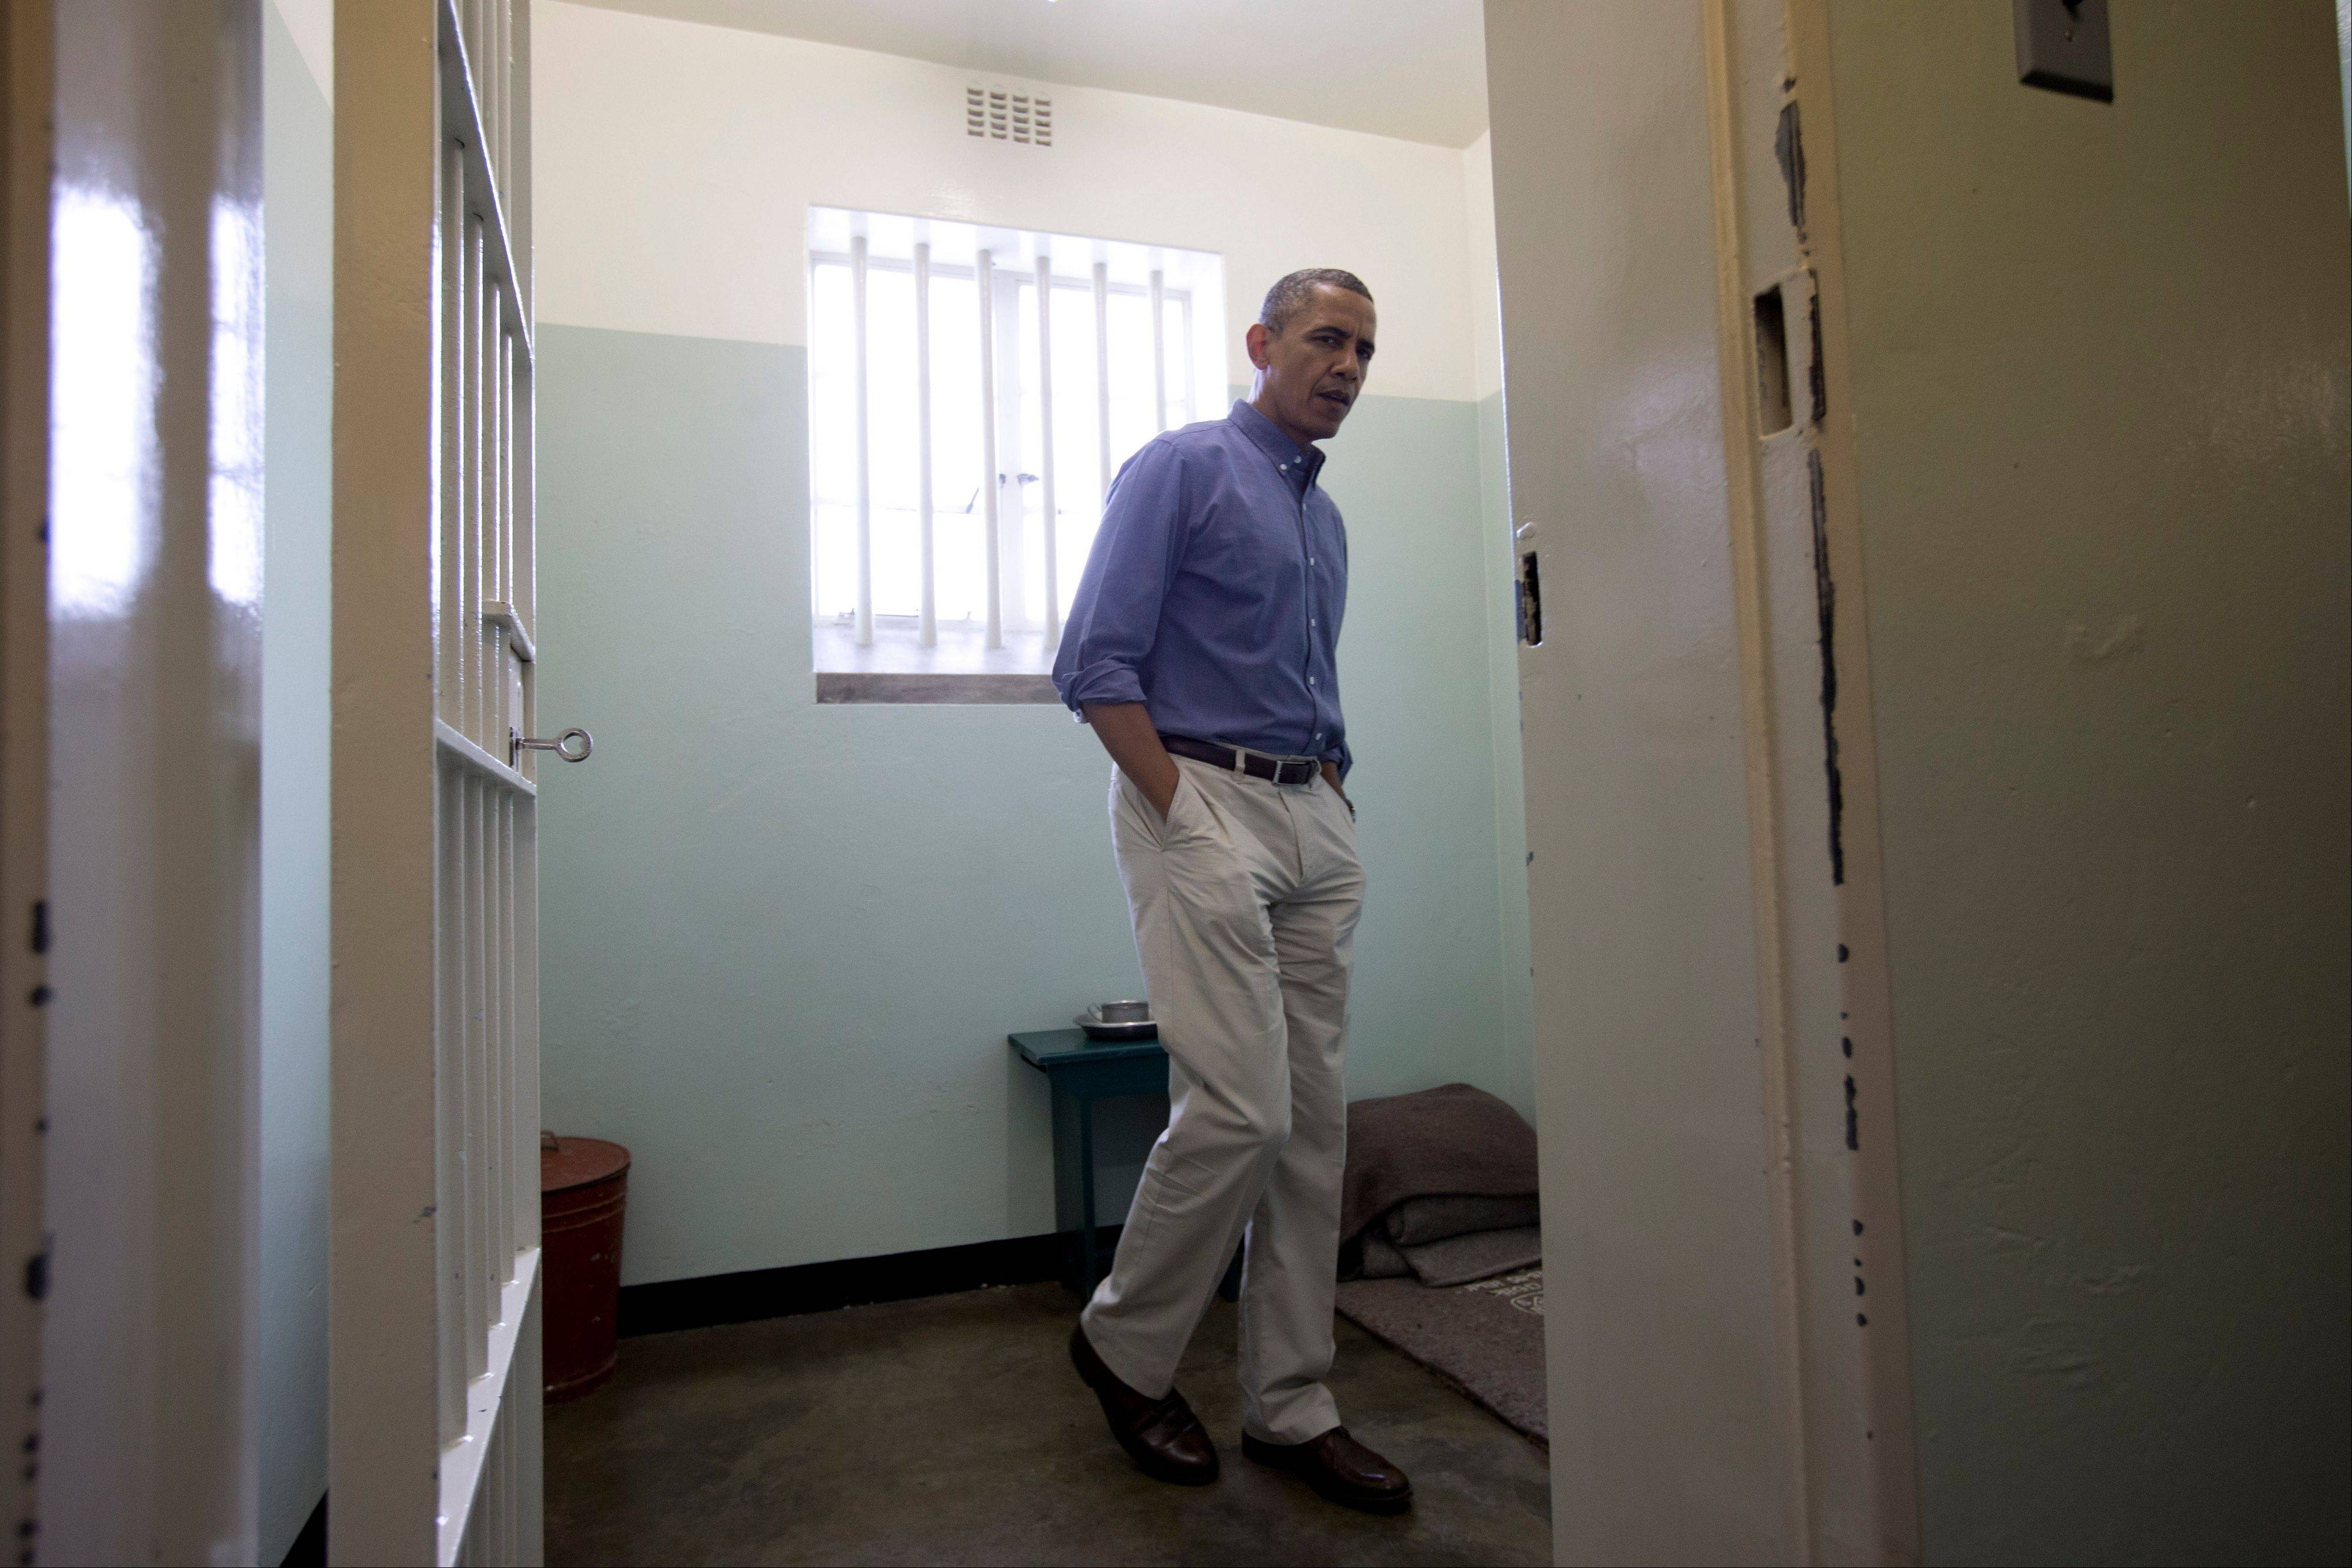 President Barack Obama looks out from Section B, prison cell No. 5, on Robben Island, South Africa, on Sunday. This was former South African president Nelson Mandela's cell, where spent 18-years of his 27-year prison term on the island locked up by the former apartheid government.